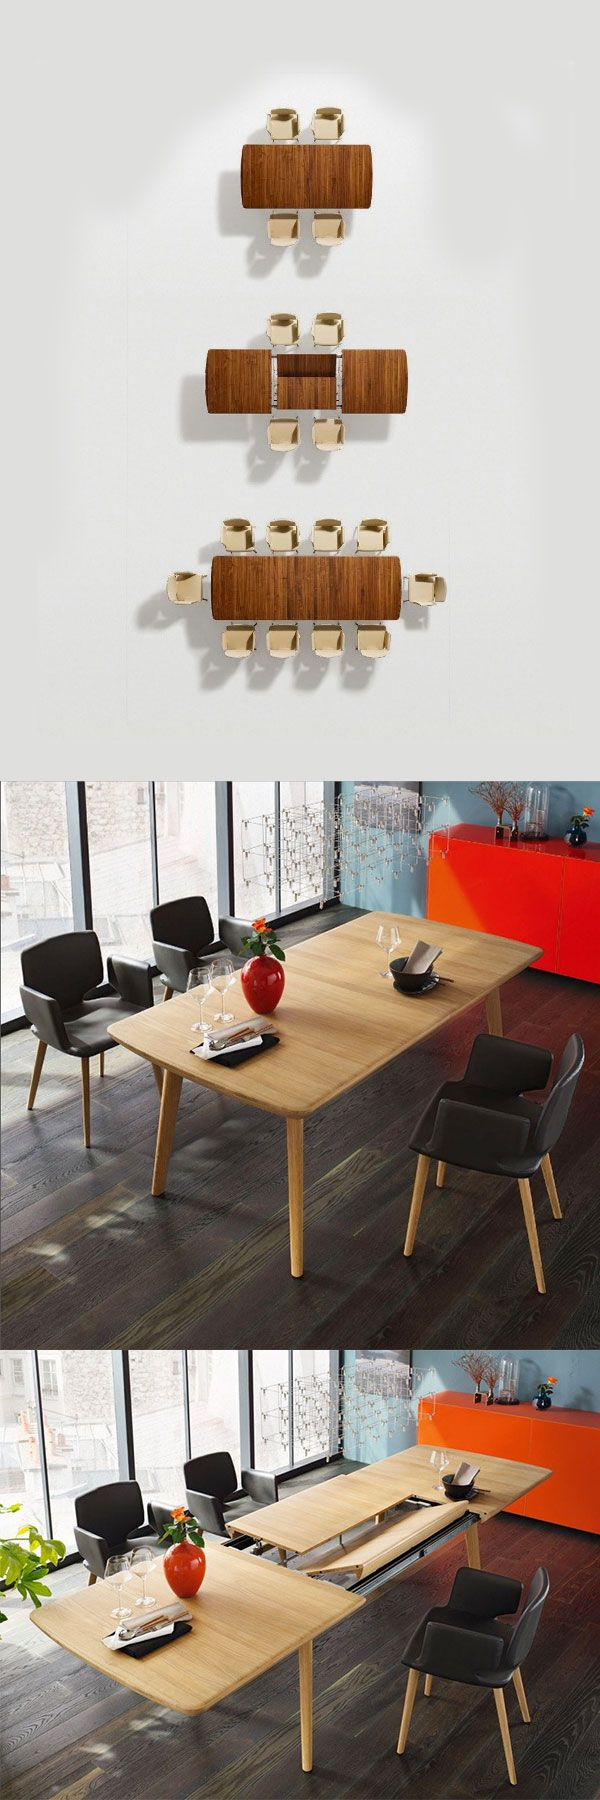 Expandable dining table with chairs